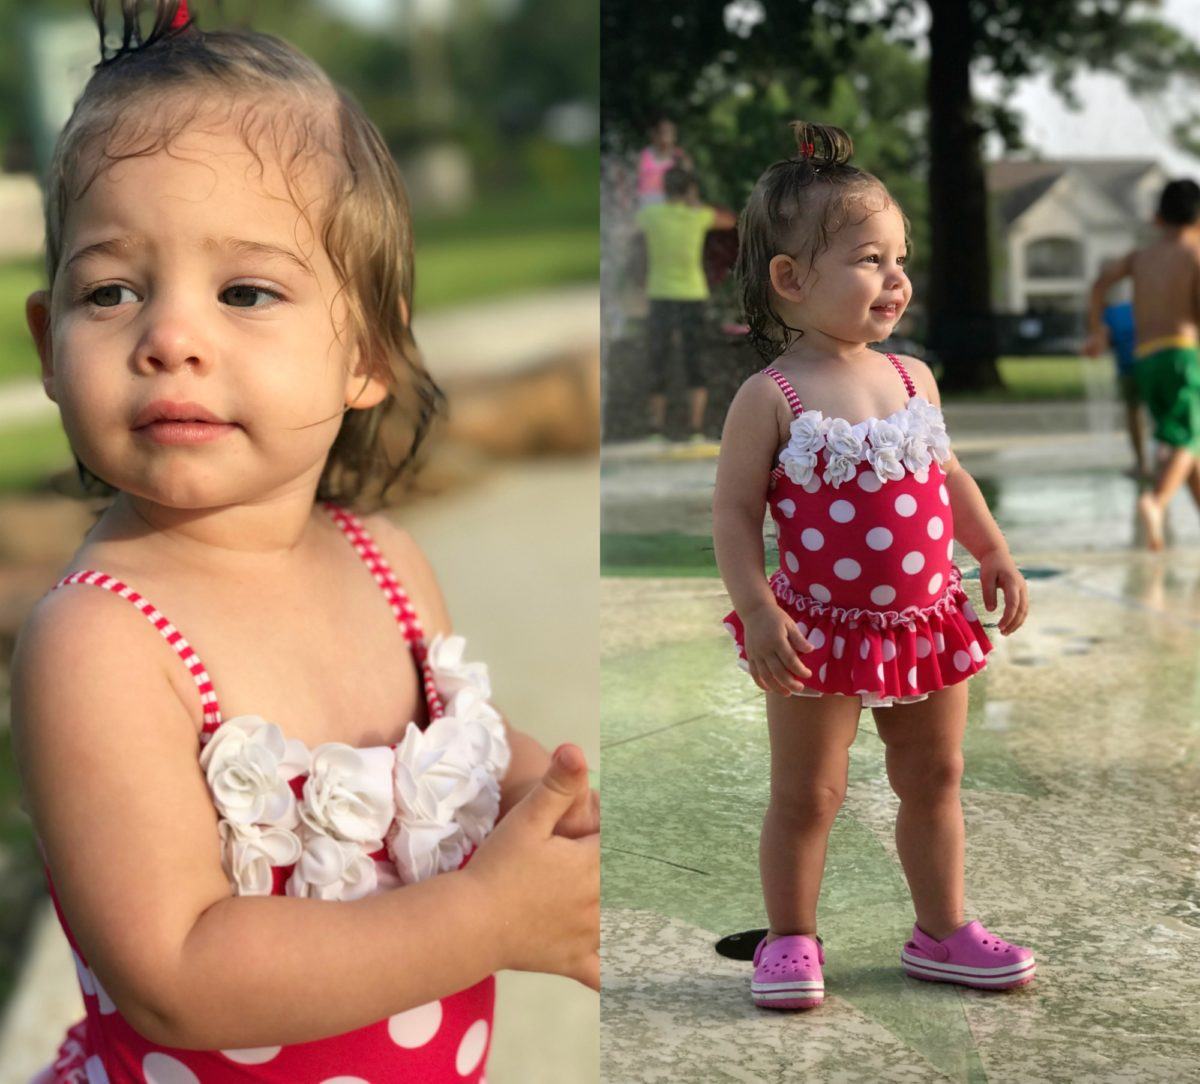 Jordan polka dot swimsuit